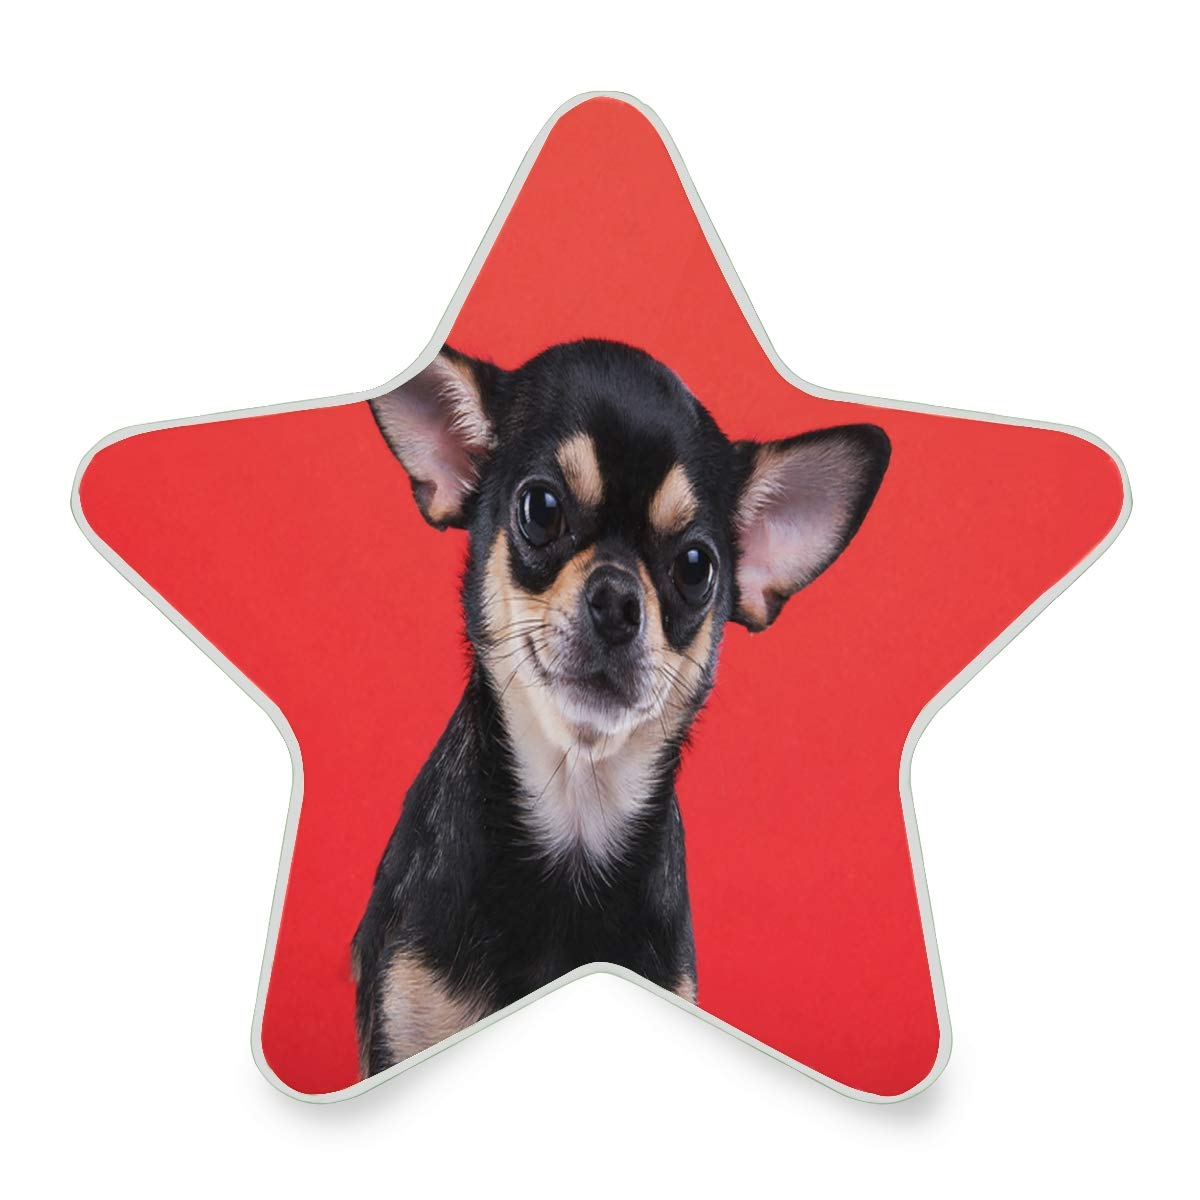 LED Night Light Cute Chihuahua Dog Funny Puppy Red Nightlight Decorative Star Pentagram Shaped Plug in for Kids Baby Girls Boys Adults Room